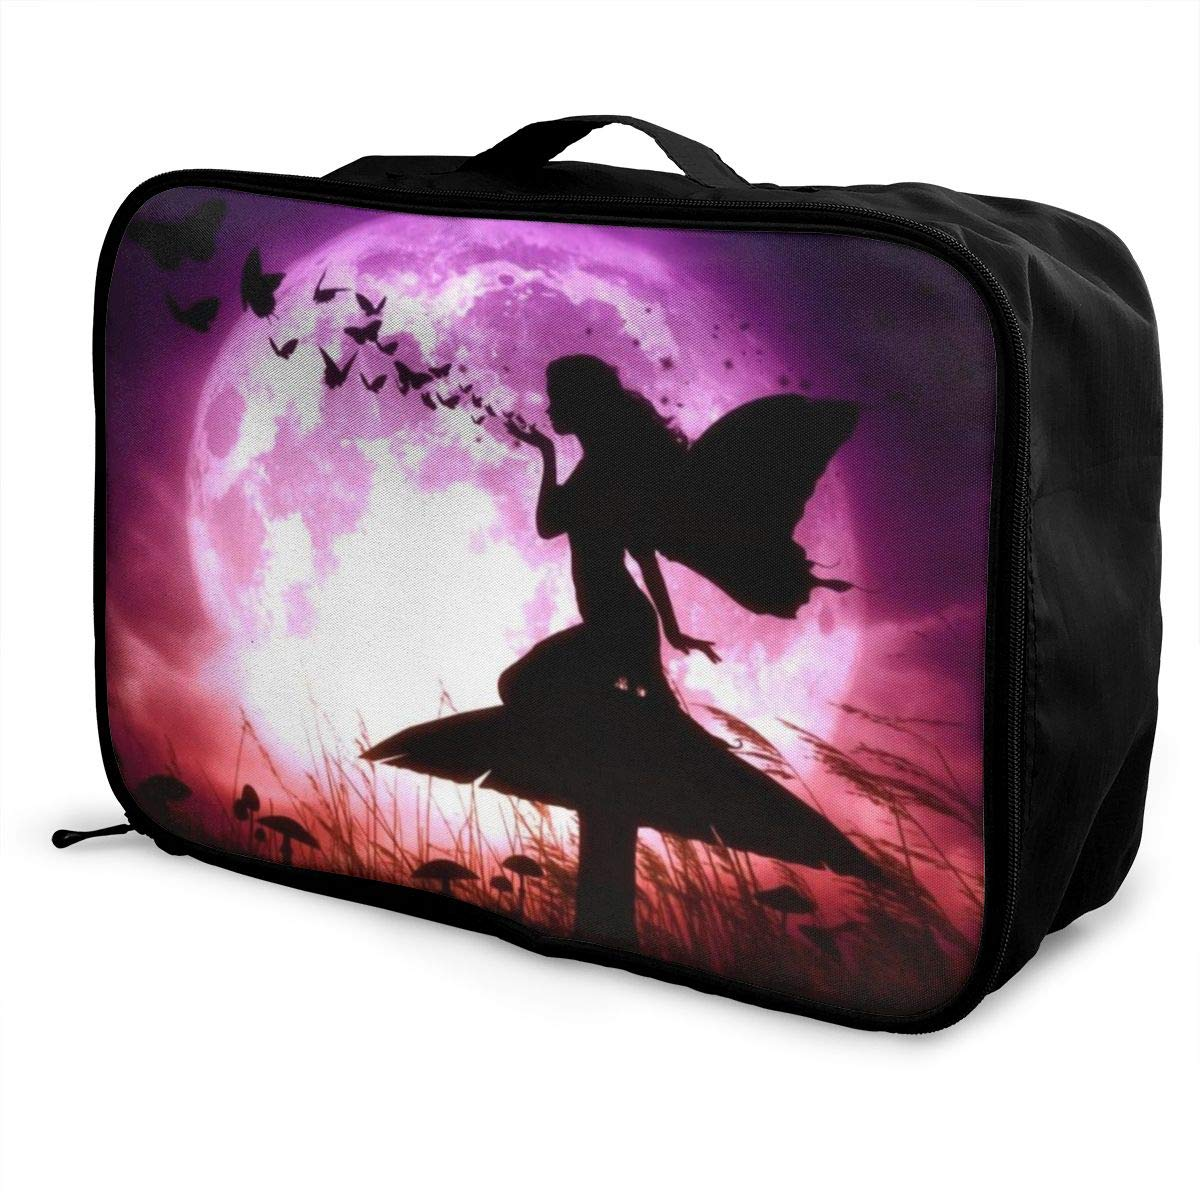 Girl and Butterfly Travel Duffel Bag Waterproof Fashion Unisex Lightweight Large Capacity Portable Luggage Bag for Women Men